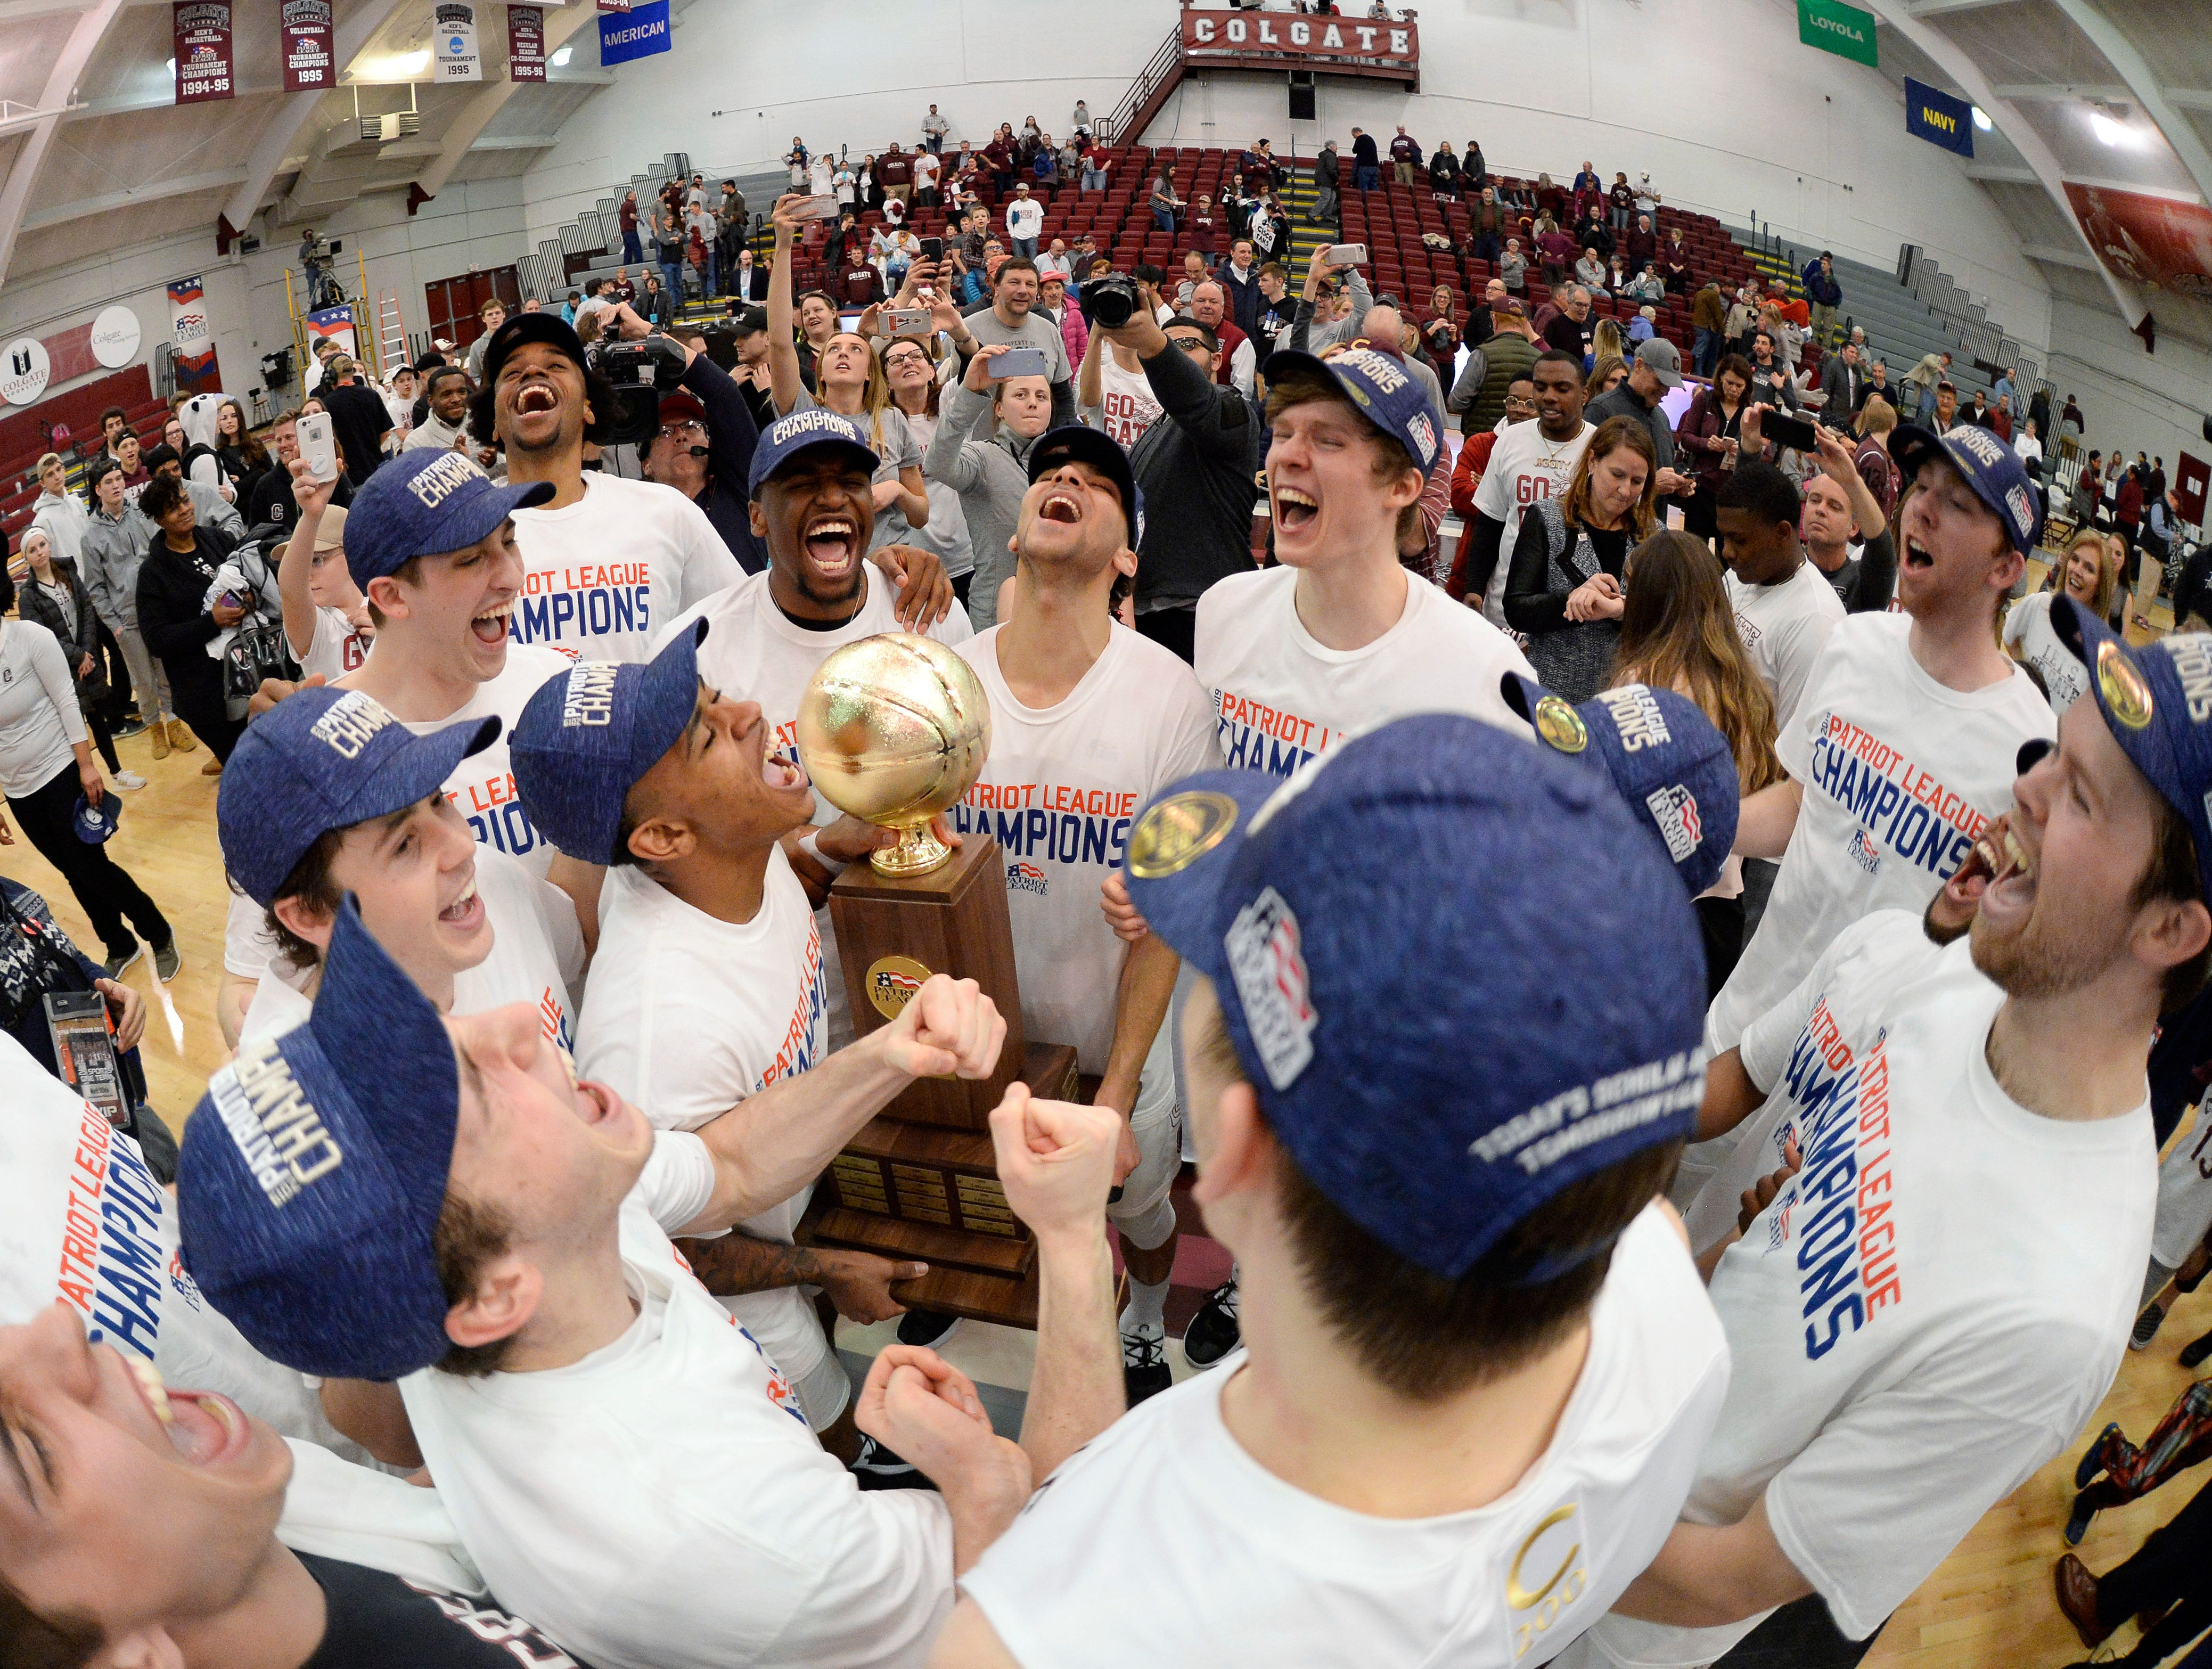 Colgate (24-10), No. 15 seed in South, Patriot League champion